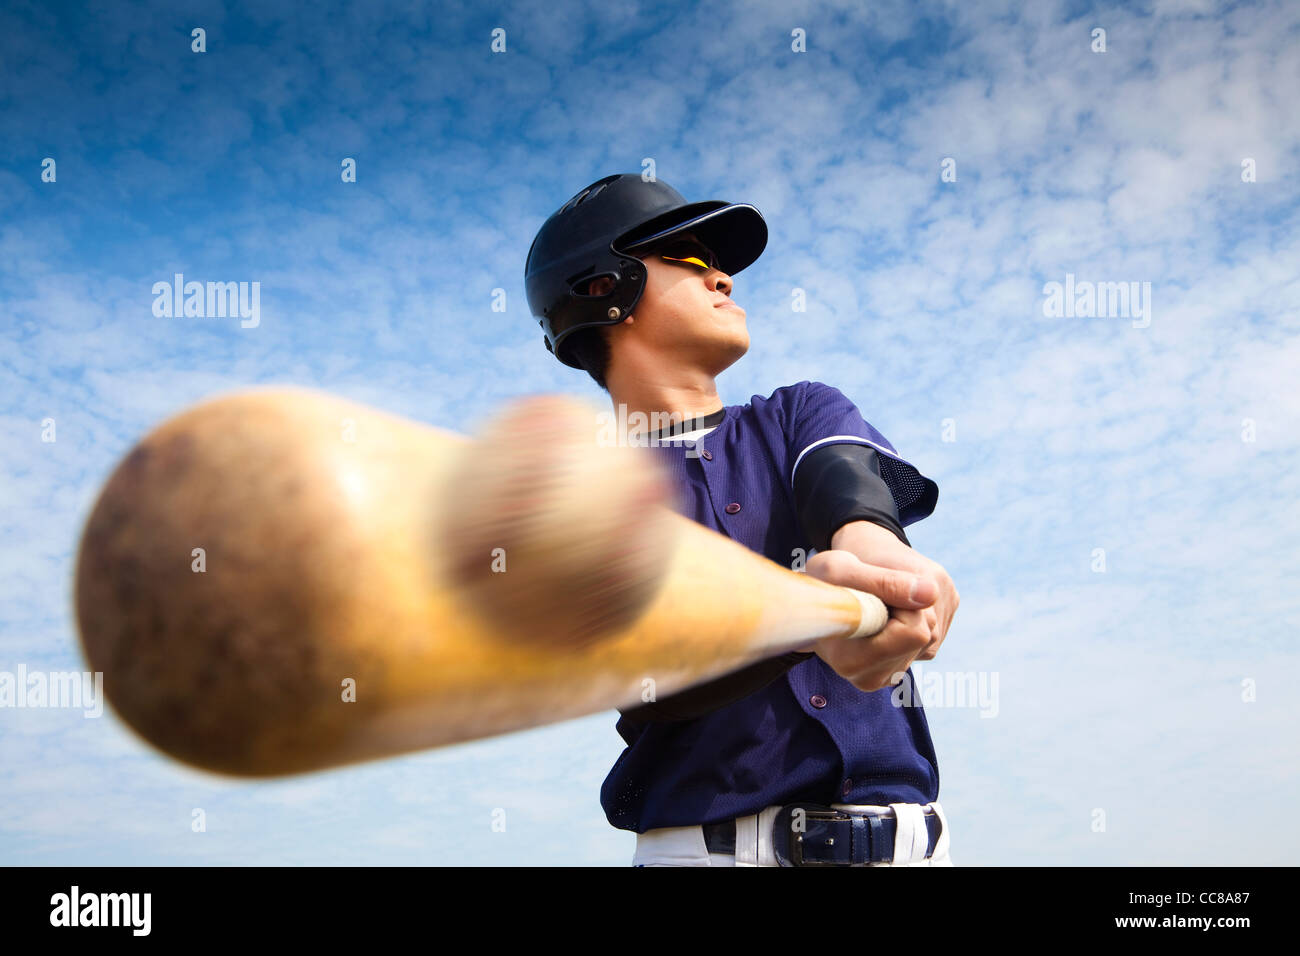 Joueur de baseball frapper Photo Stock